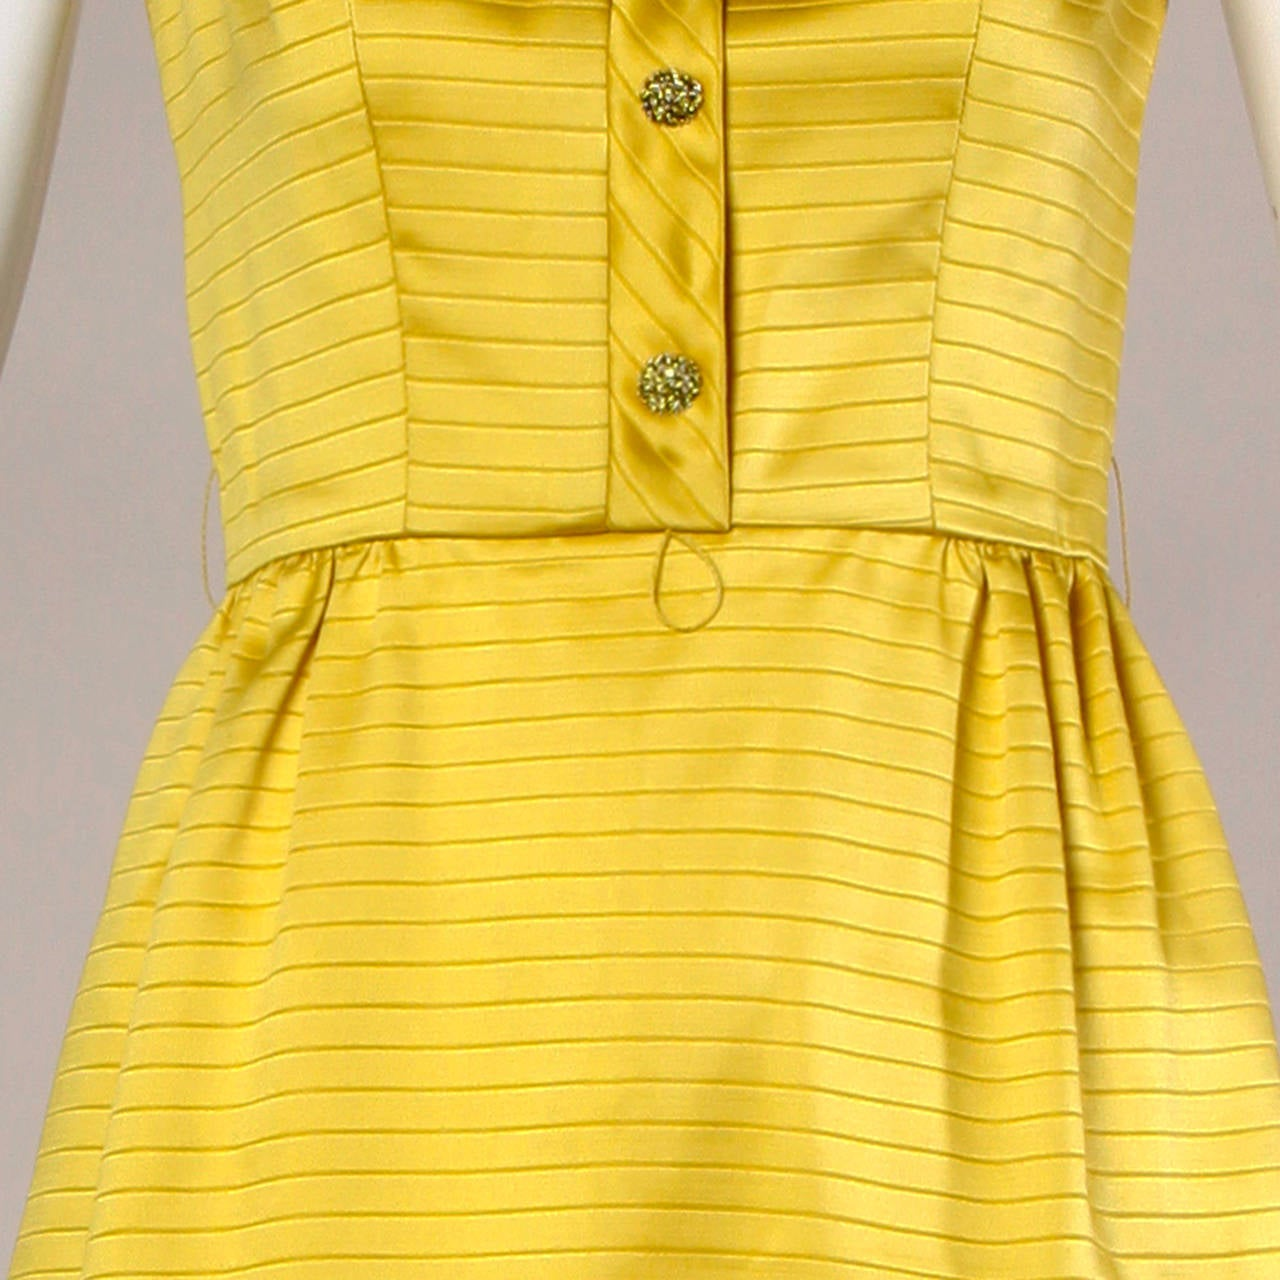 Darling 1960s Vintage Yellow Mini Dress with Rhinestone Buttons For Sale 2